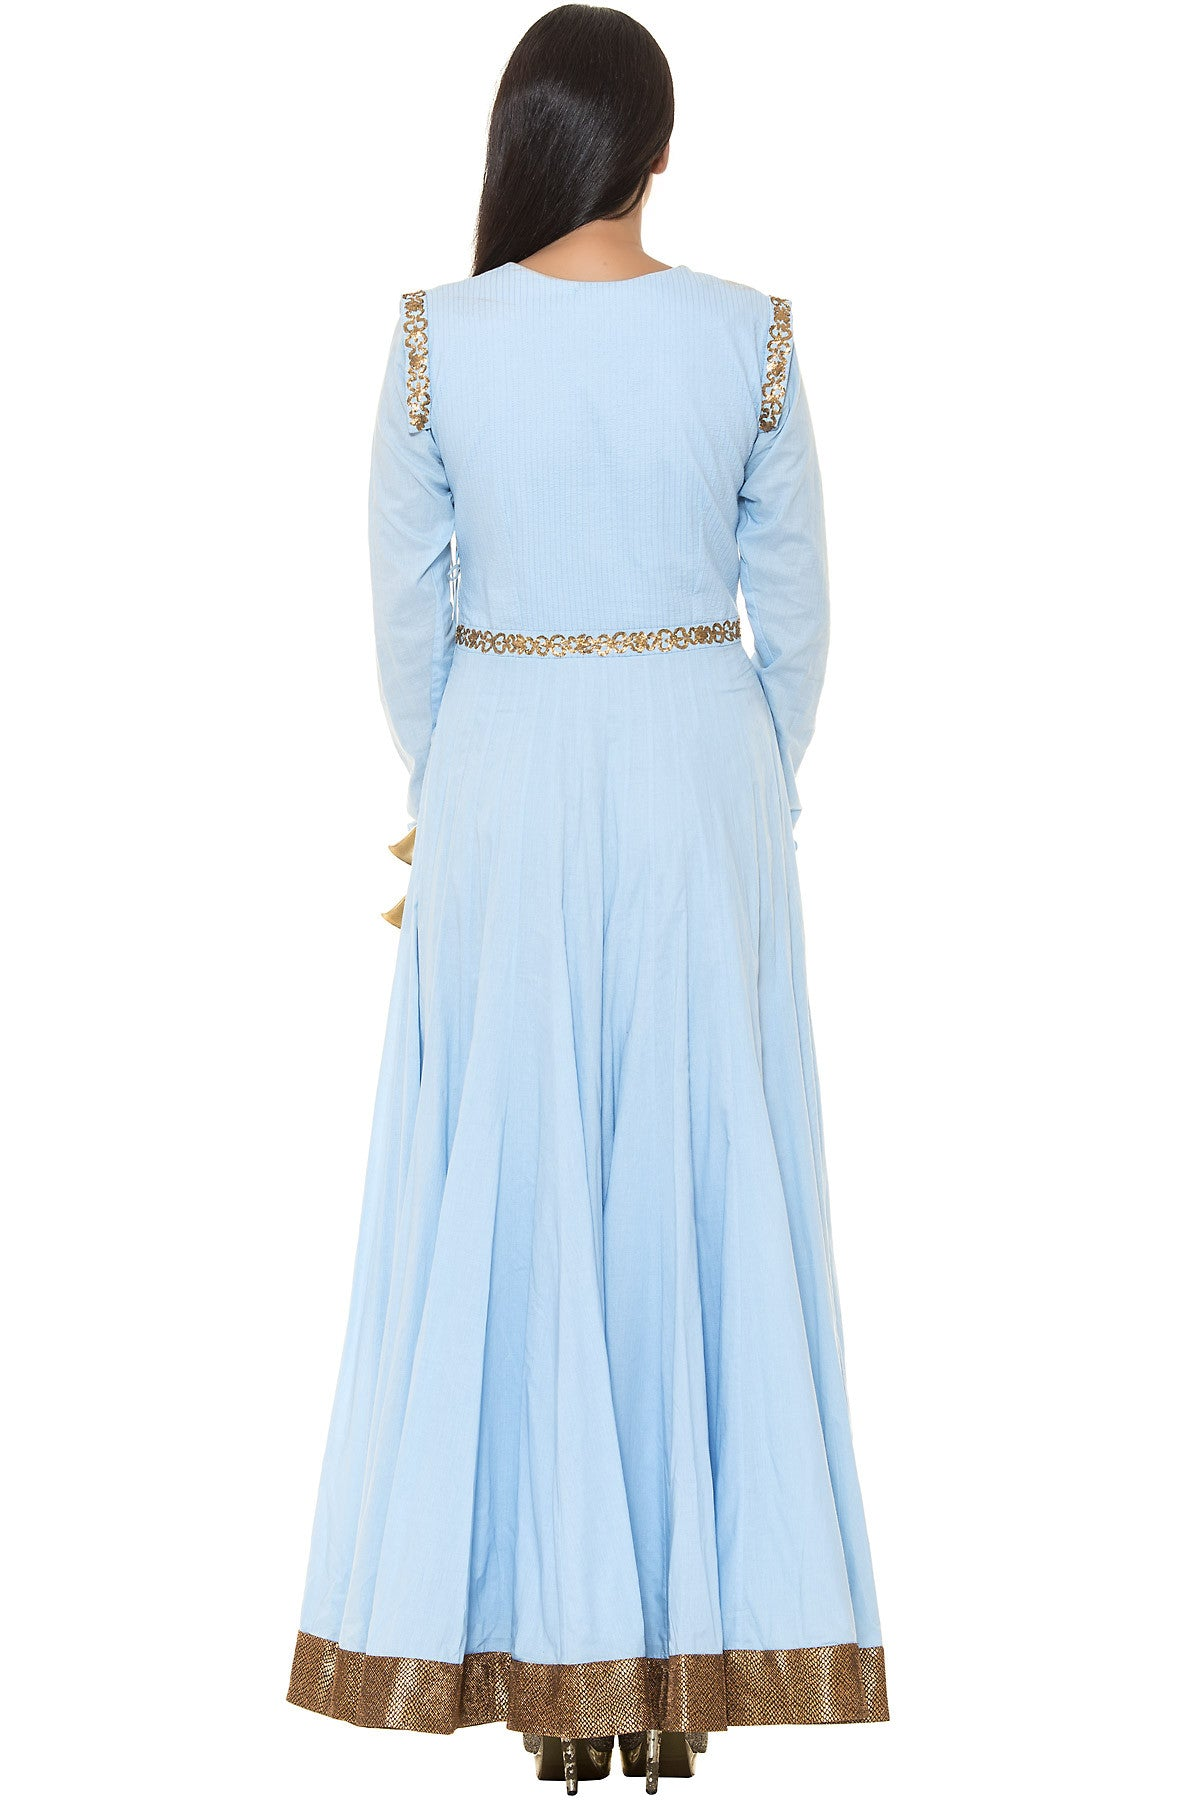 Buy Blue Floor Length Suit With Golden Embroidery and Bell Tassels Online at indi.fashion